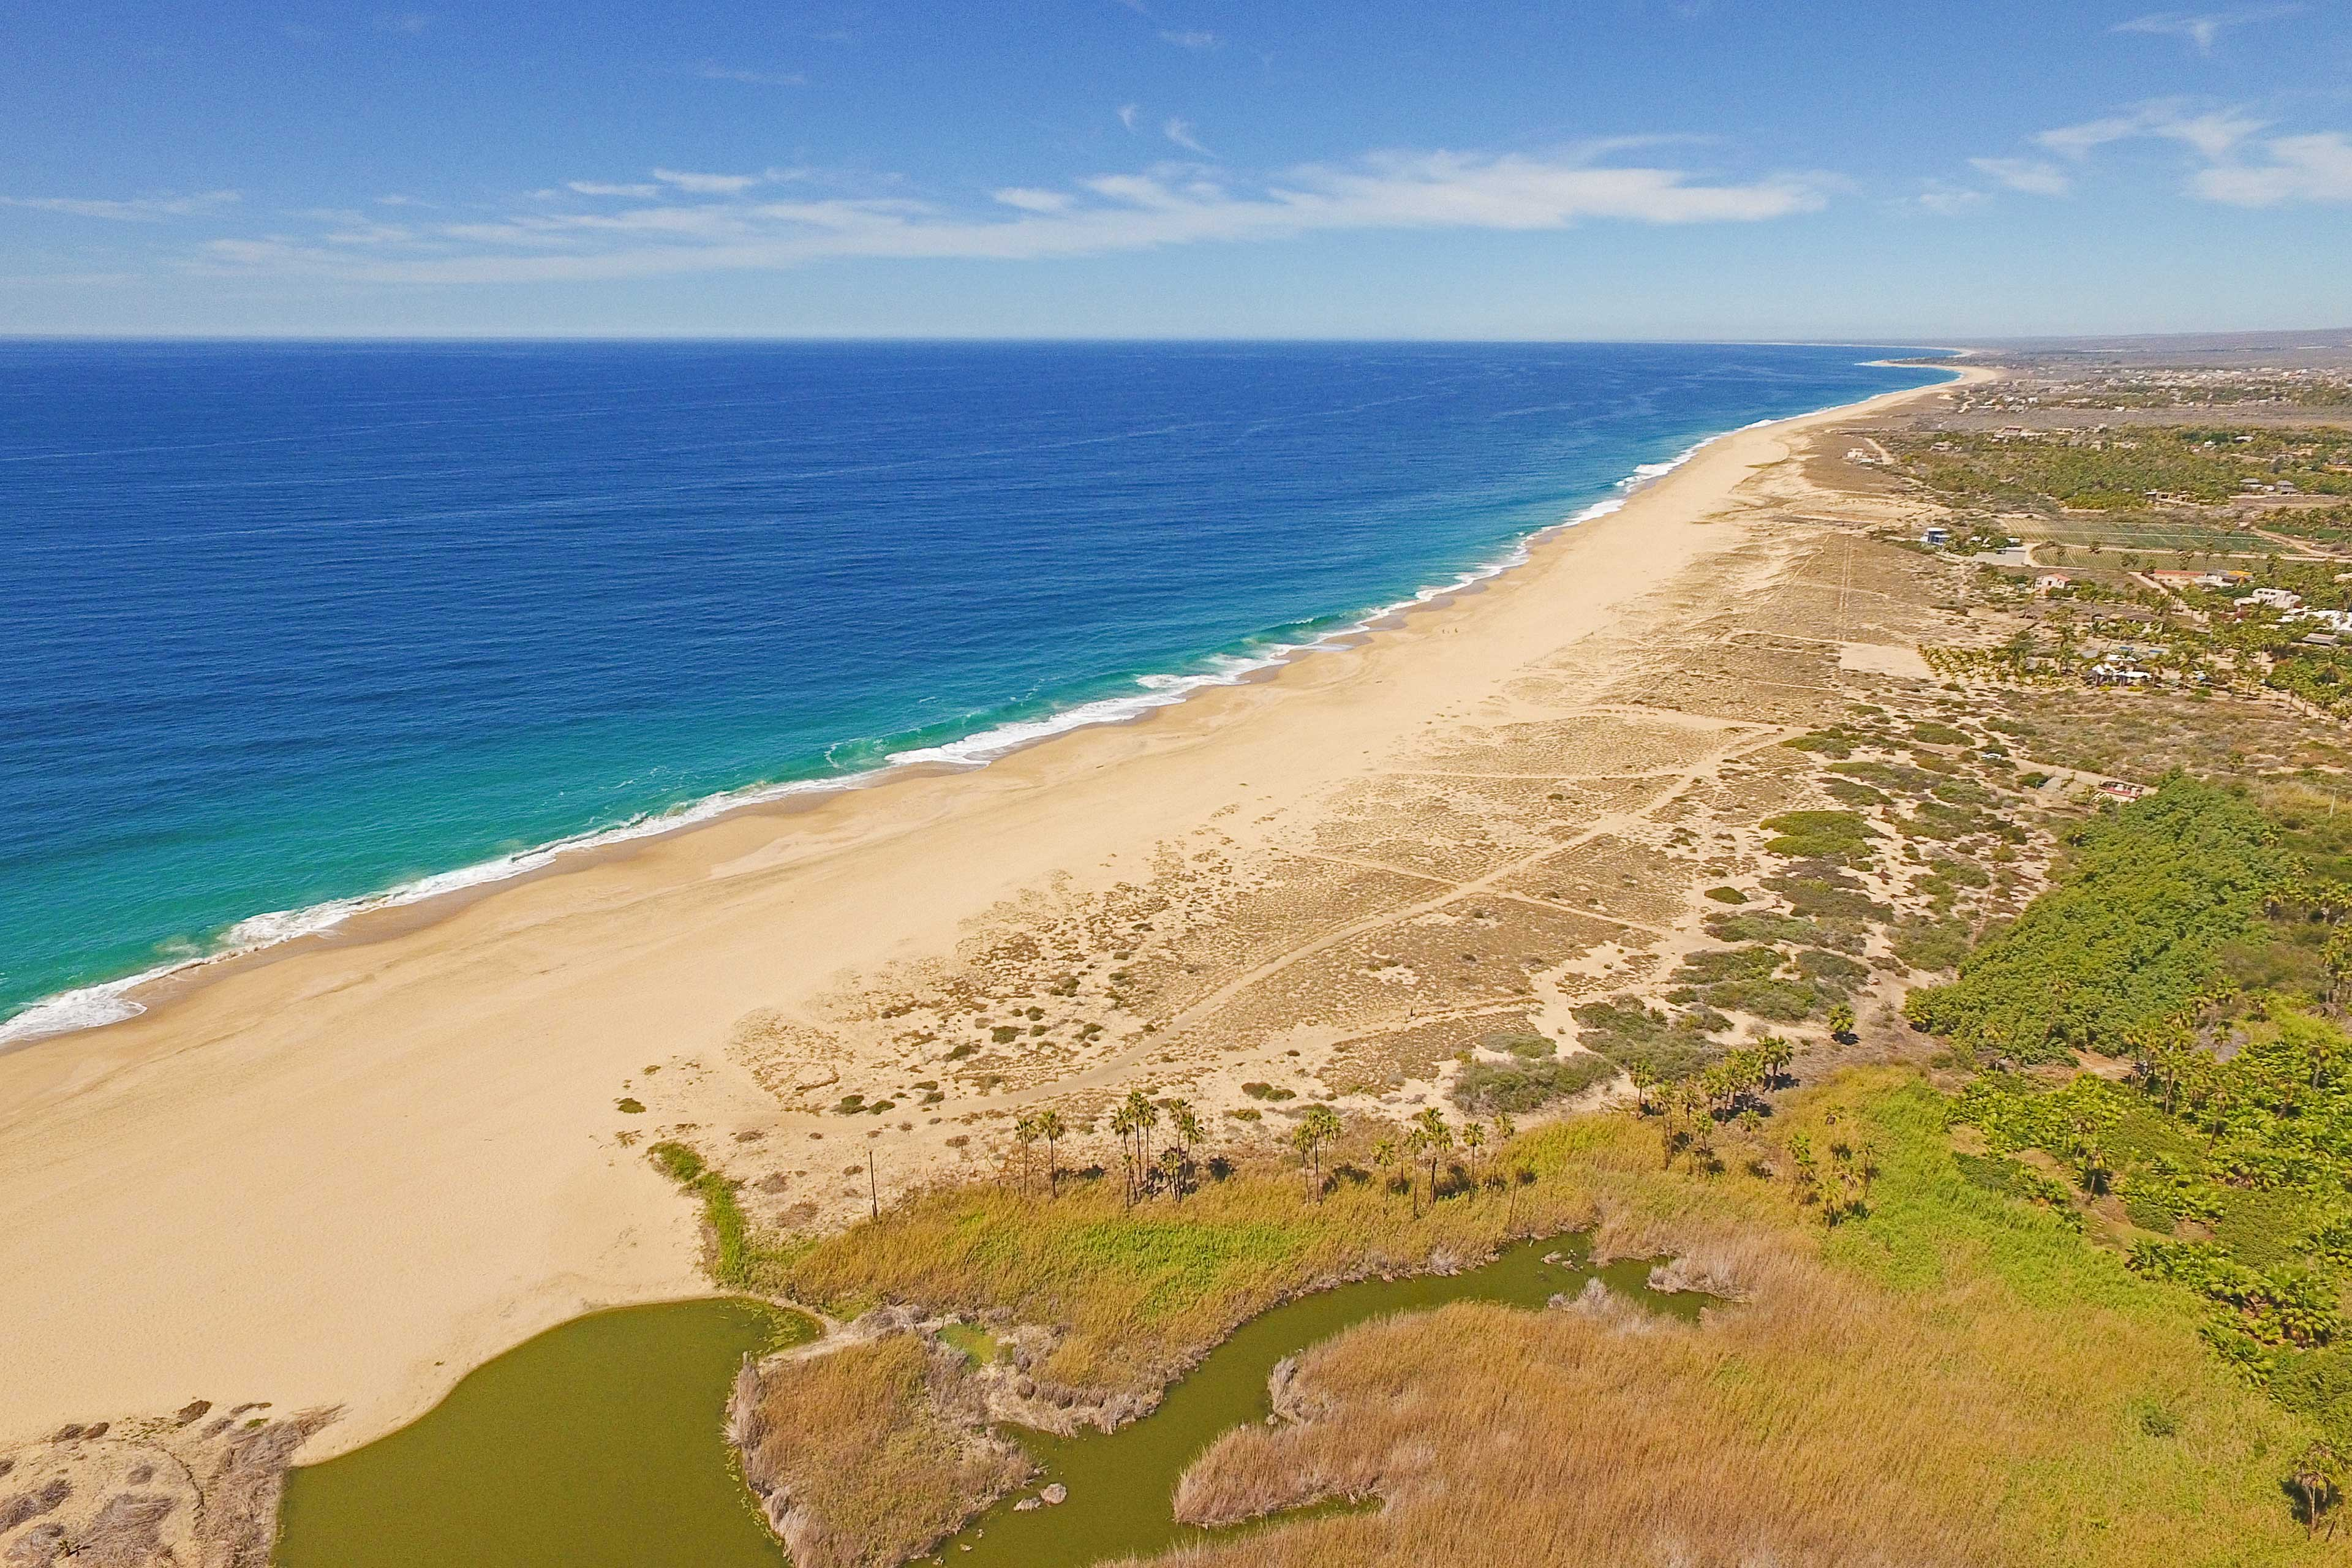 You'll find the beach just minutes from this outstanding property!